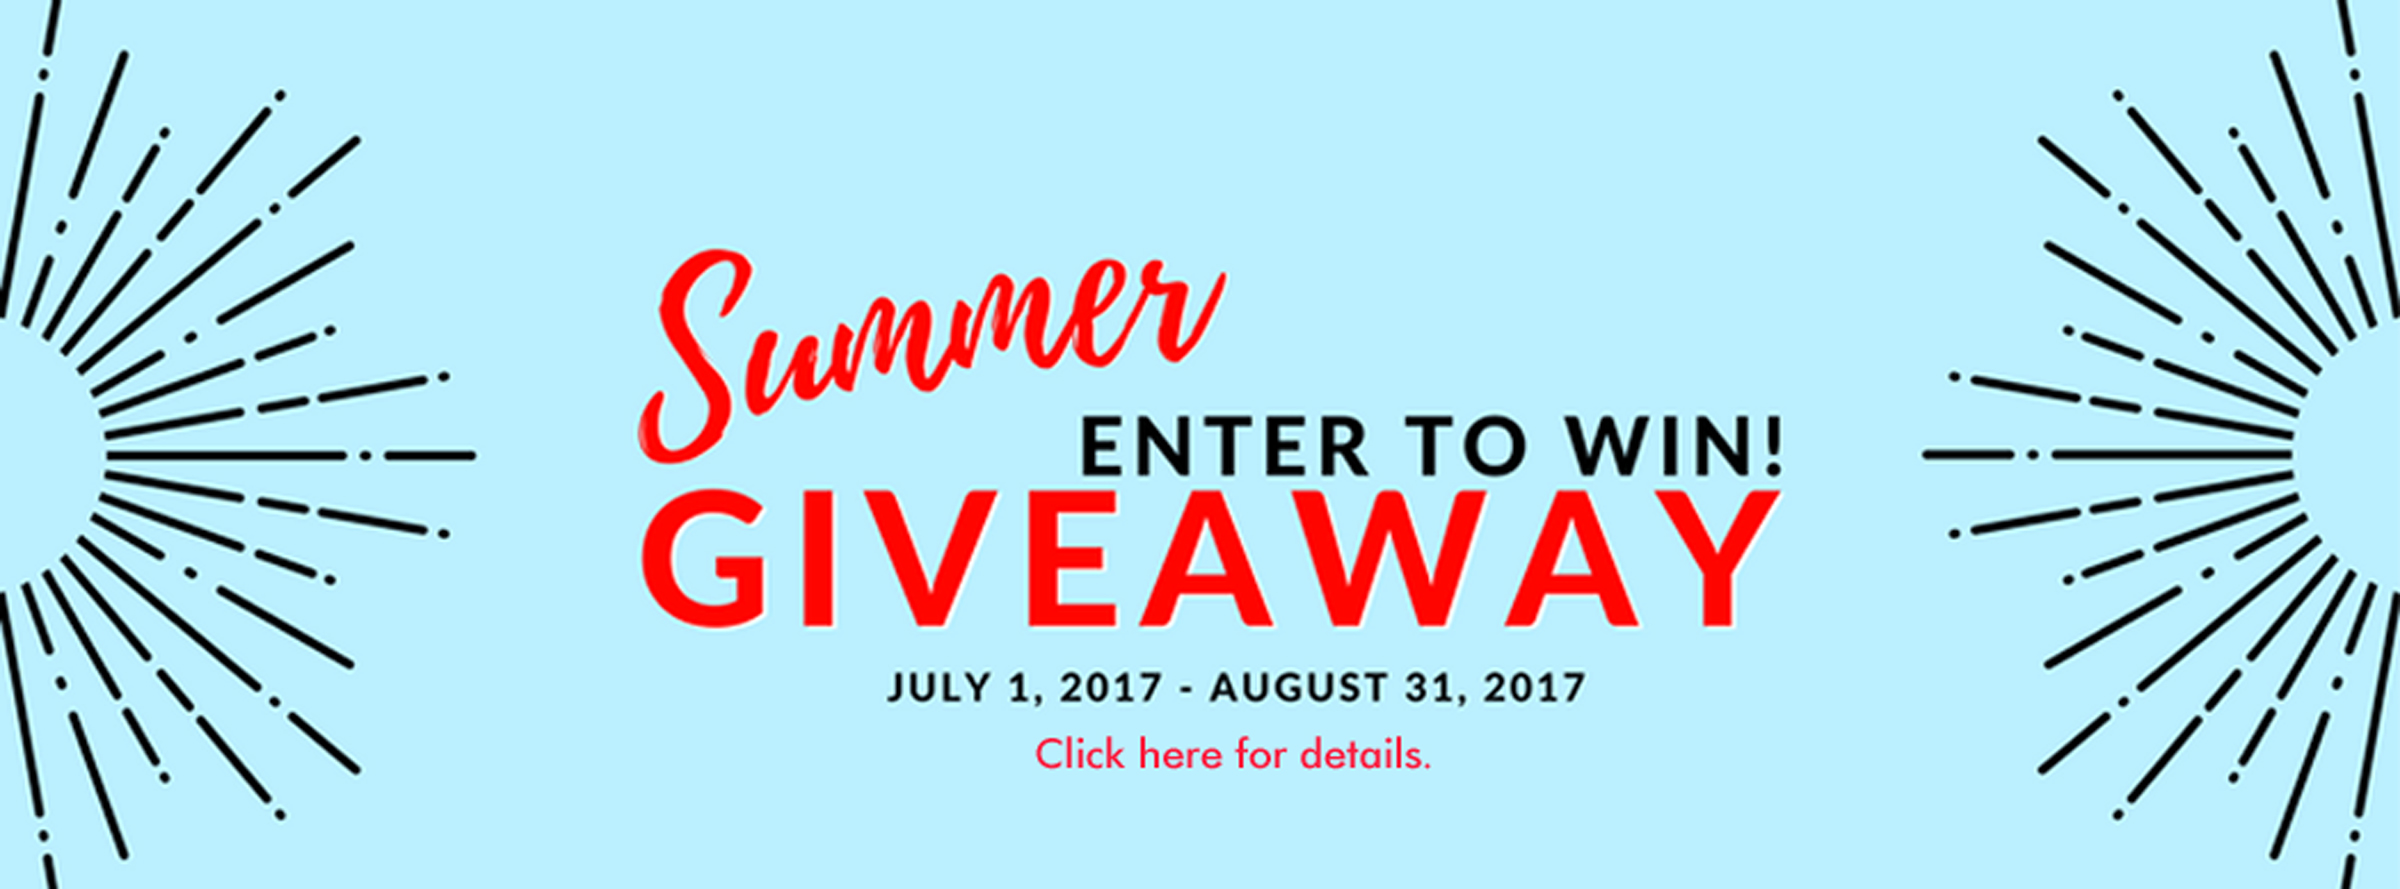 Summer Giveaway Hero Image for Website